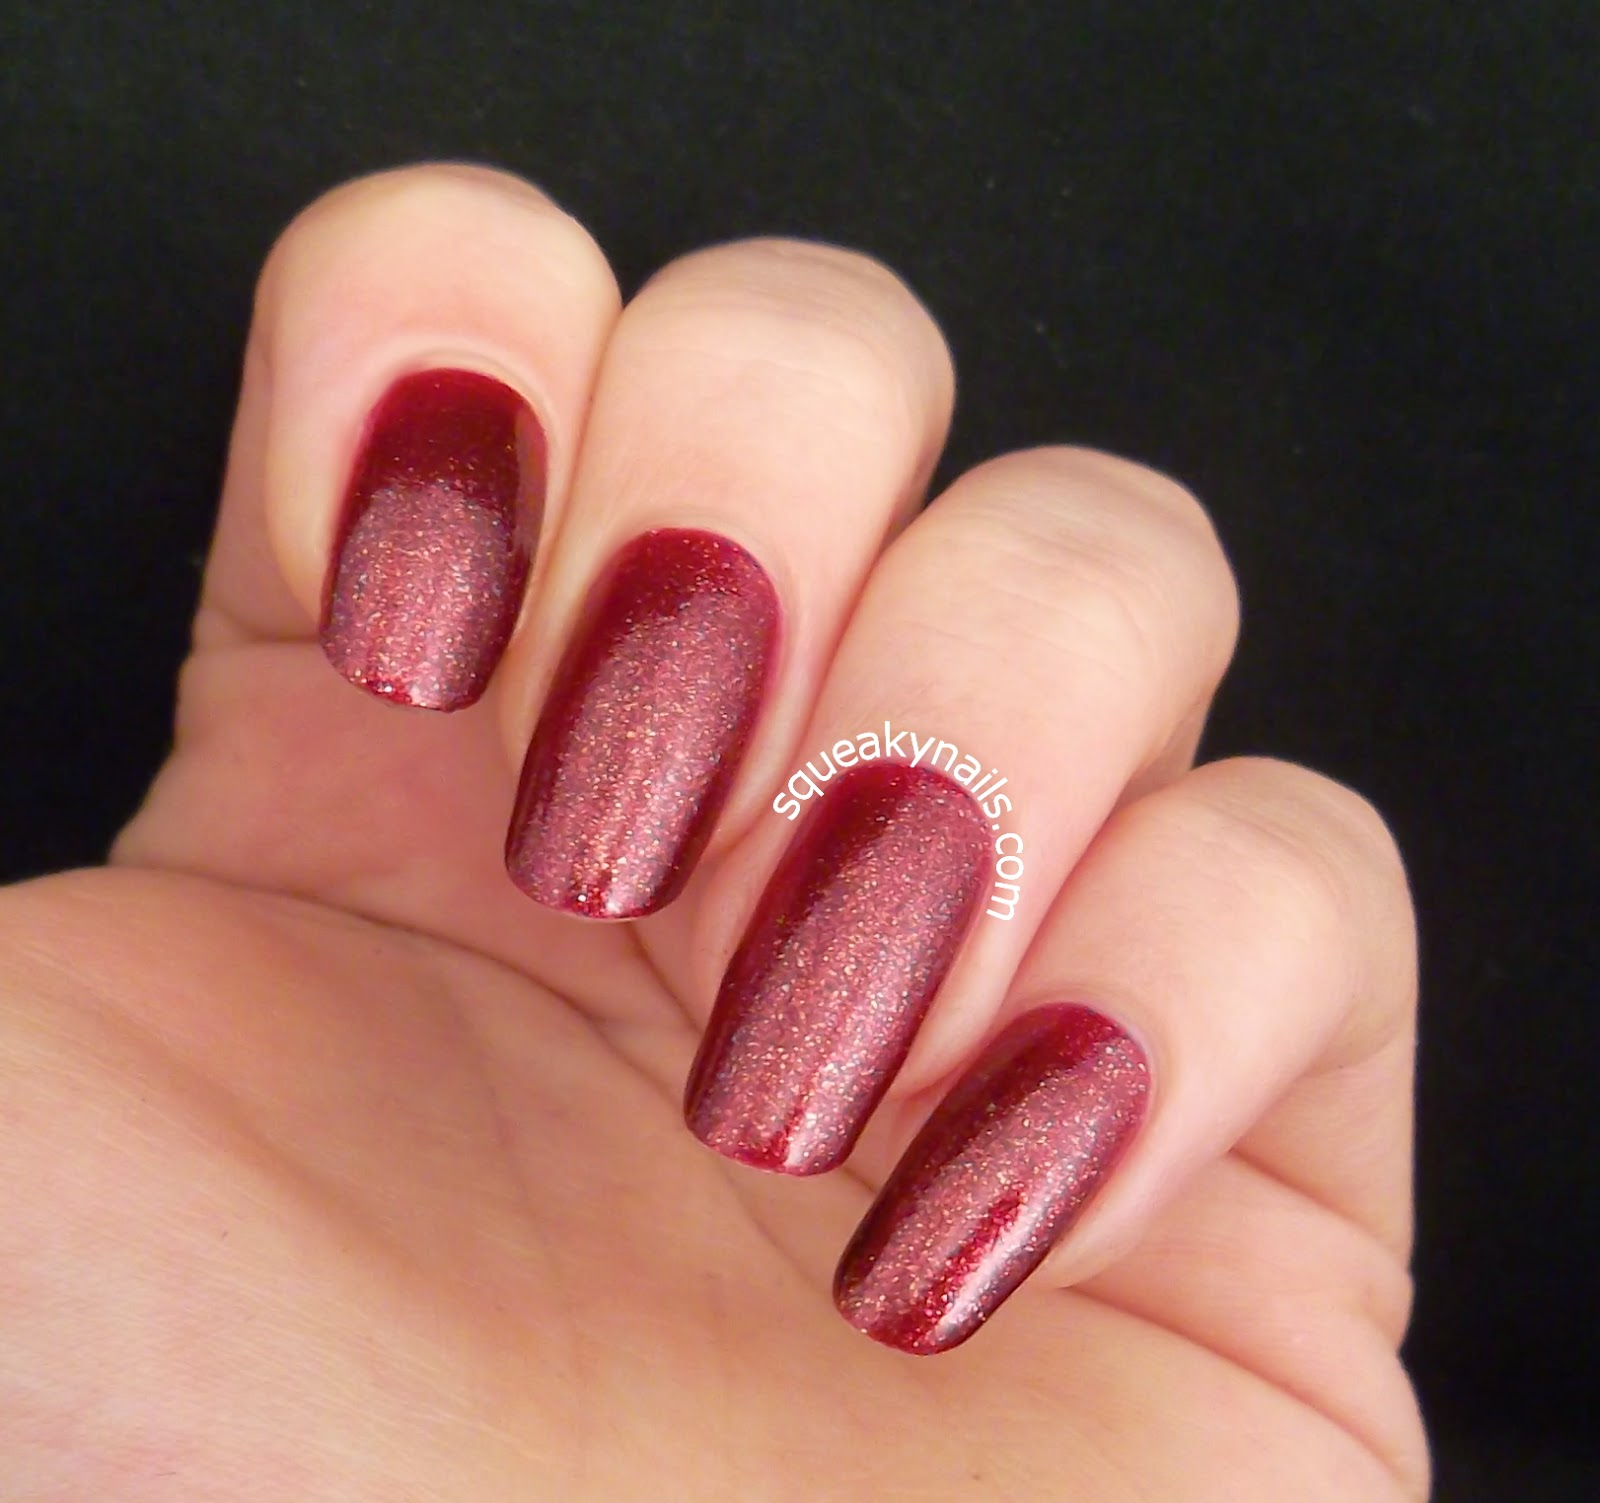 Renaissance Cosmetics Blood/Lust (Modern Vamp collection) | Squeaky Nails